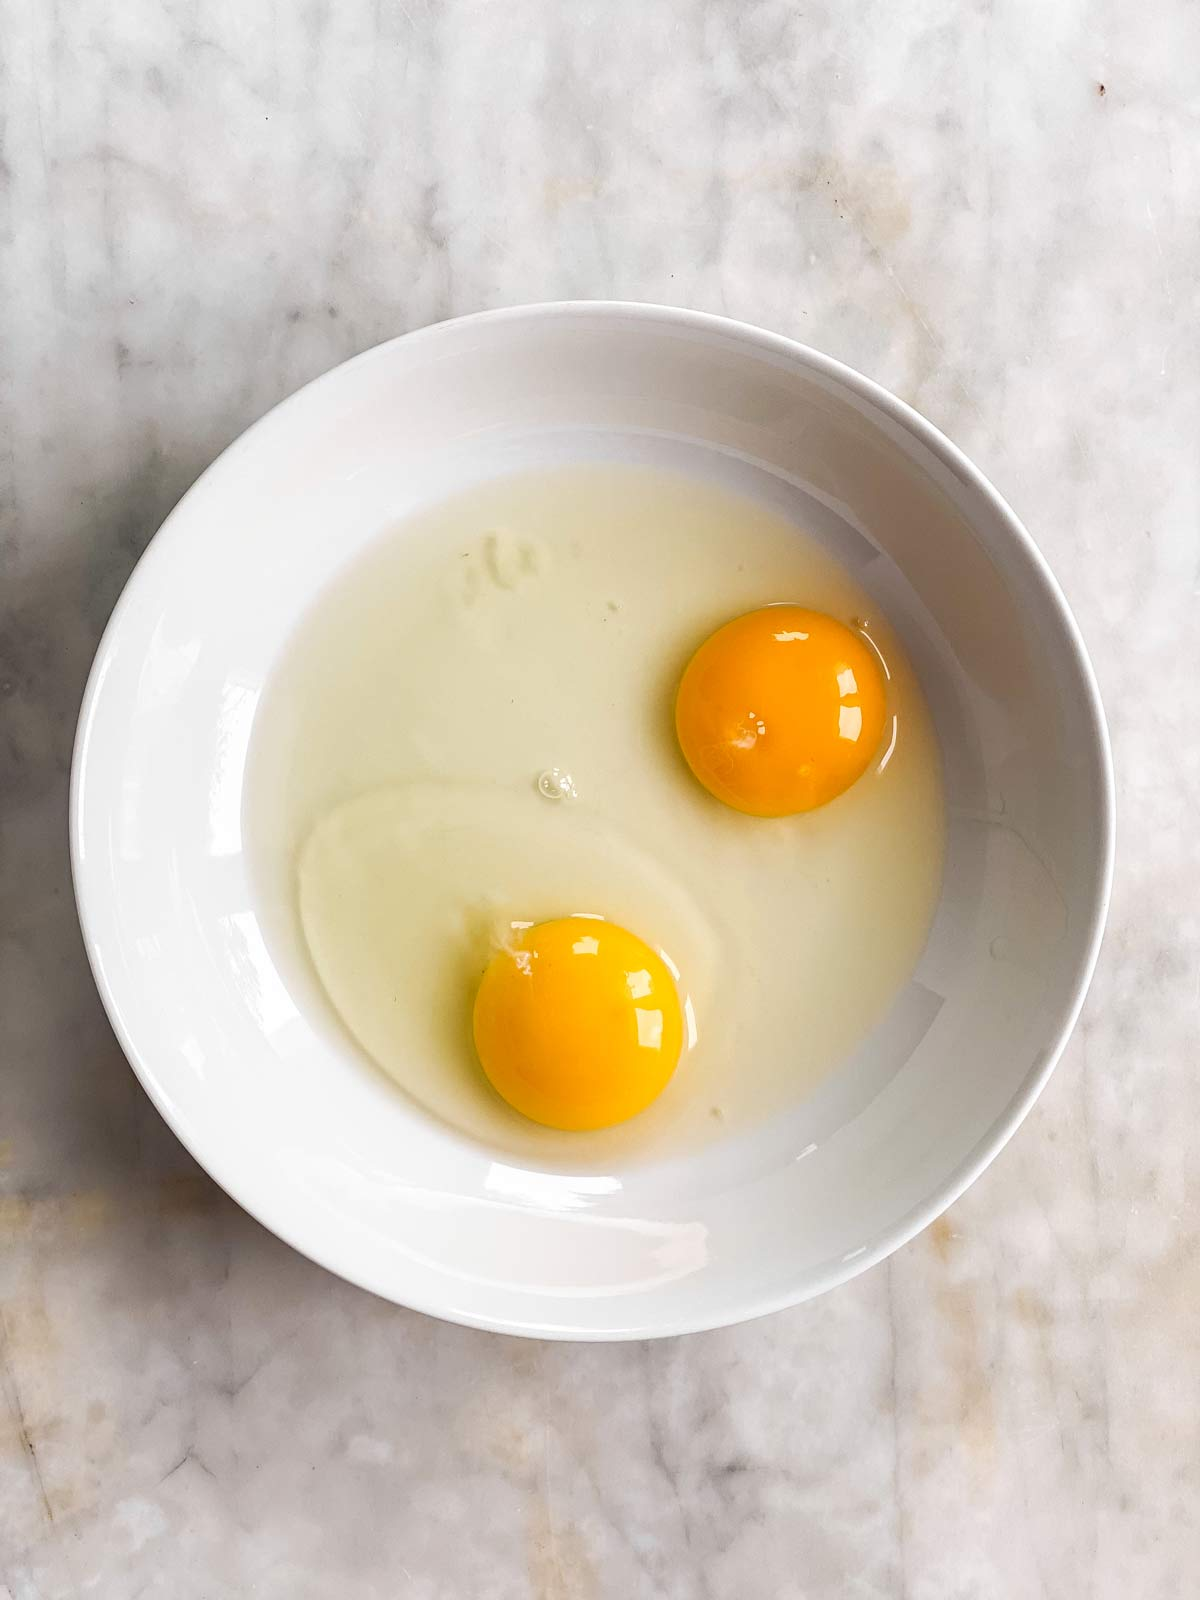 white bowl with two cracked eggs inside